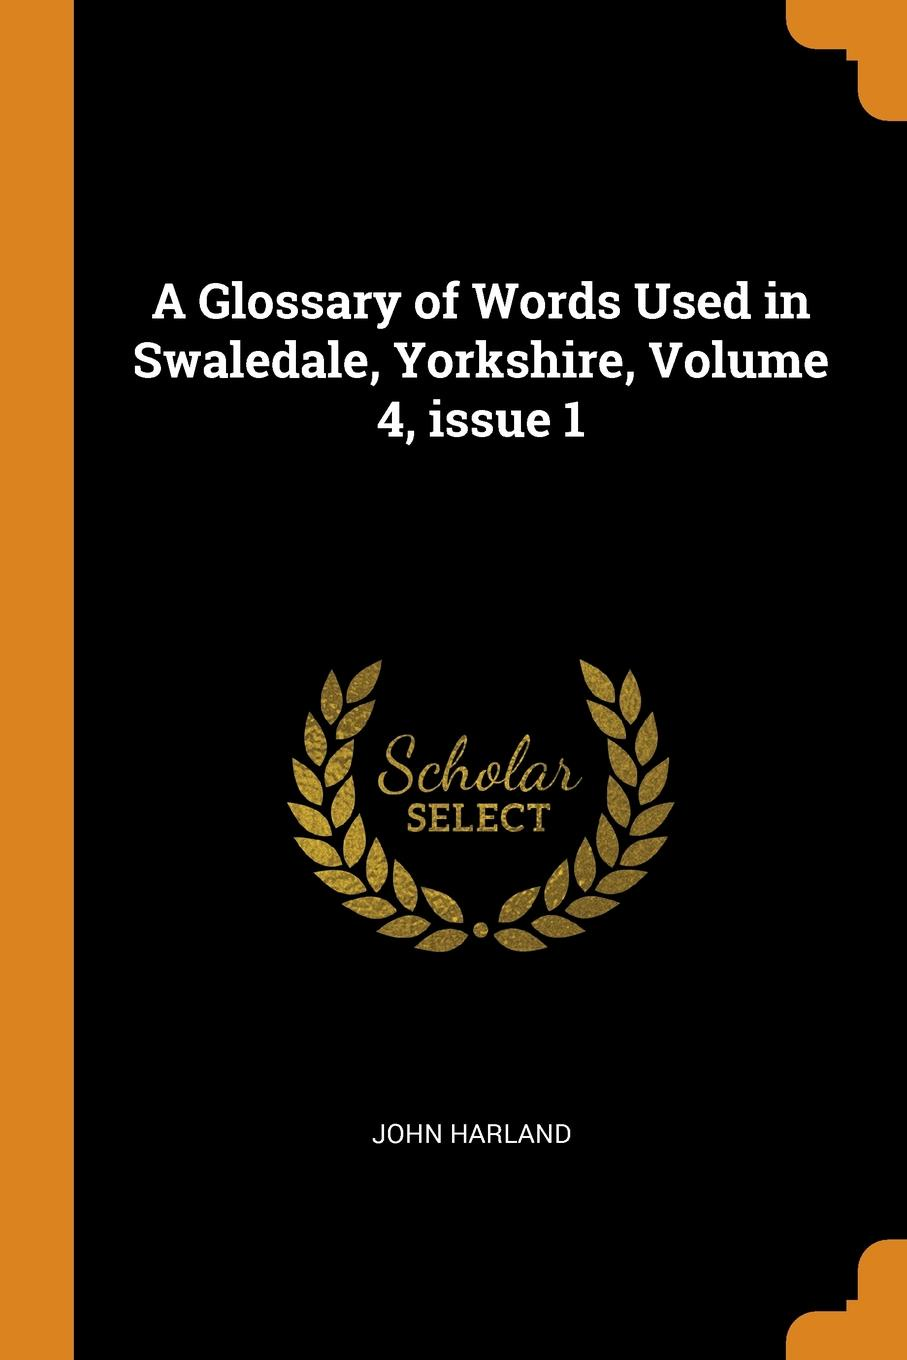 A Glossary of Words Used in Swaledale, Yorkshire, Volume 4, issue 1. John Harland